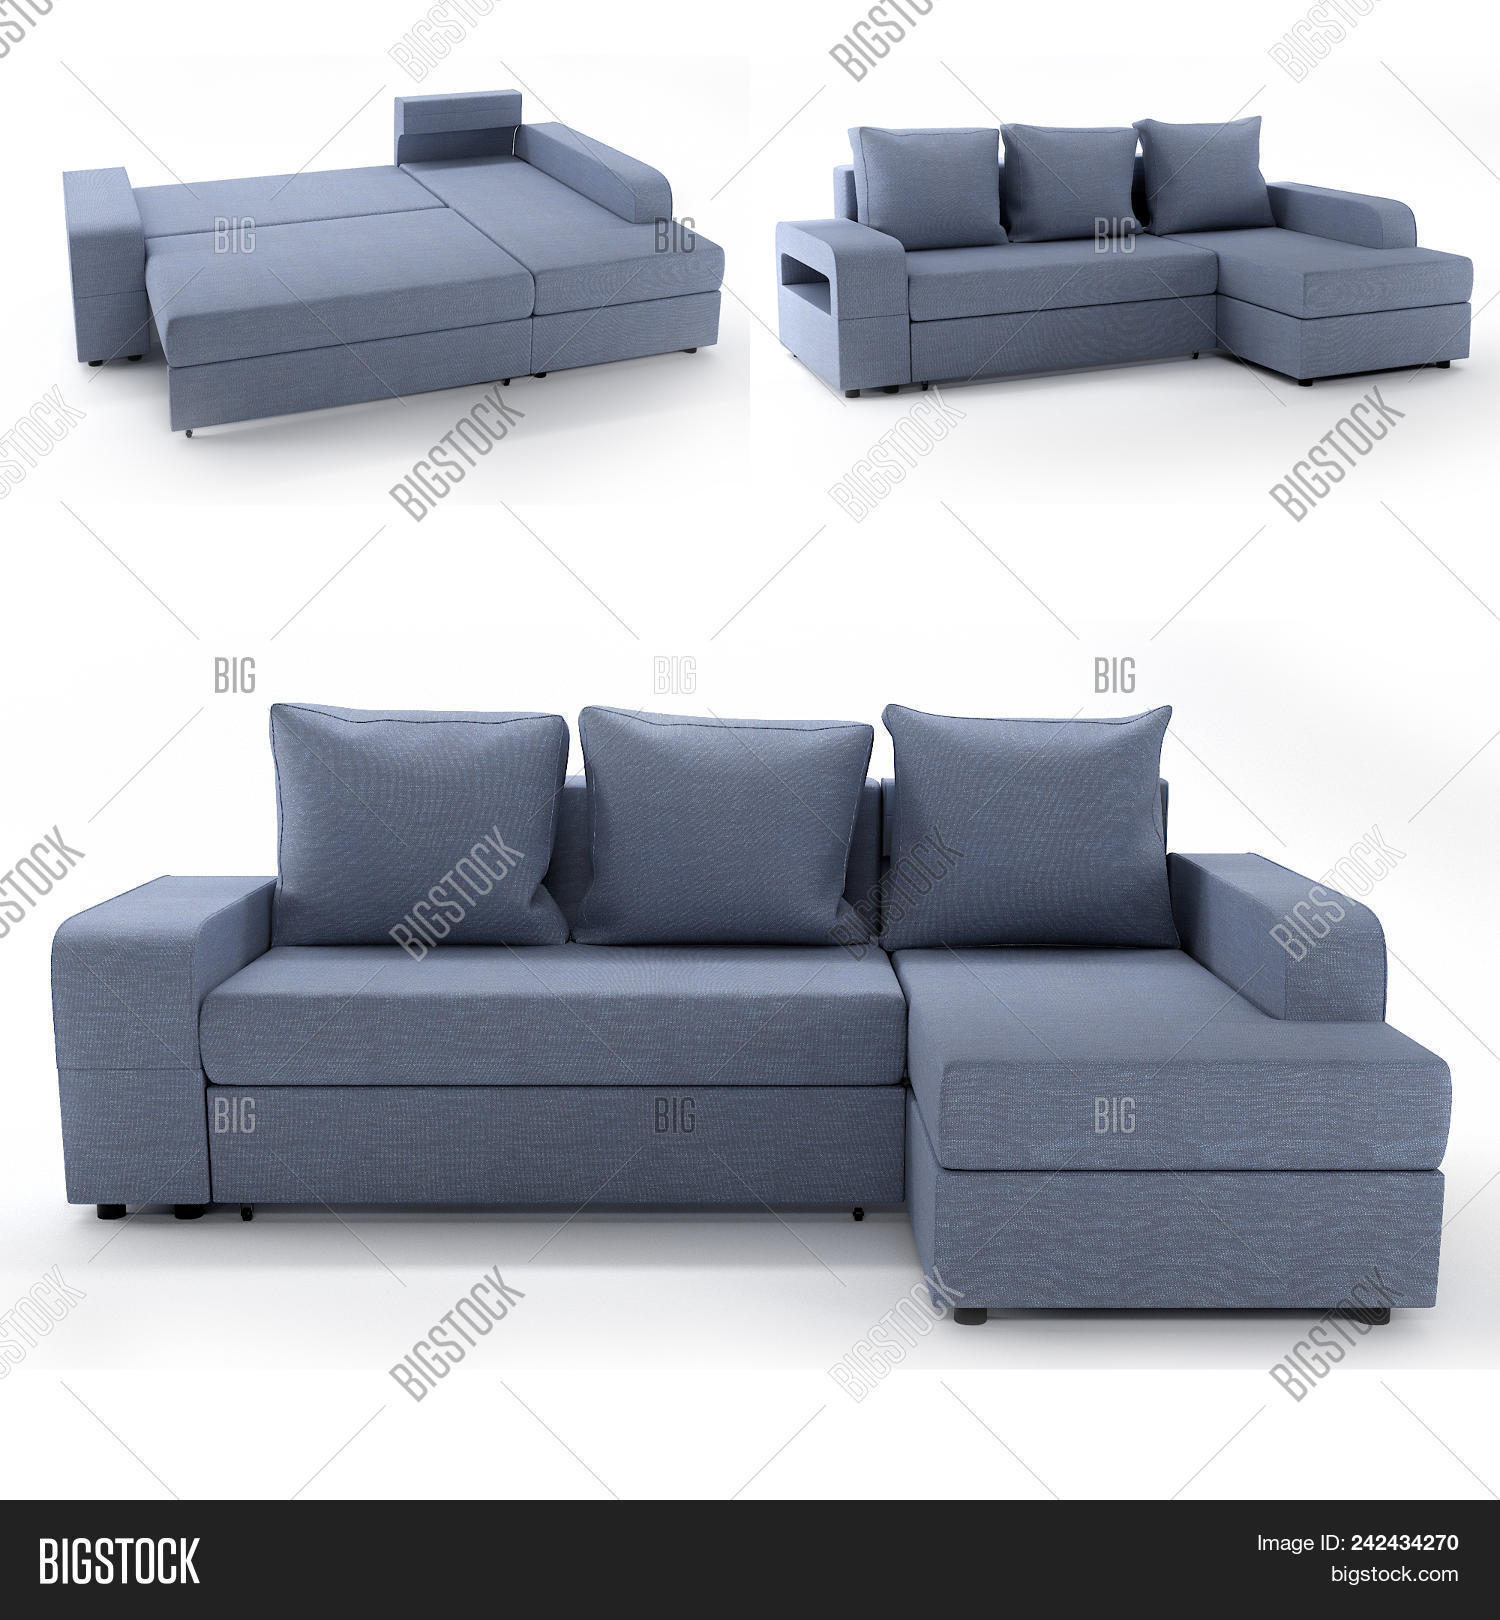 Modern sofa of simple shape a budget option in upholstered furniture use for minimalistic